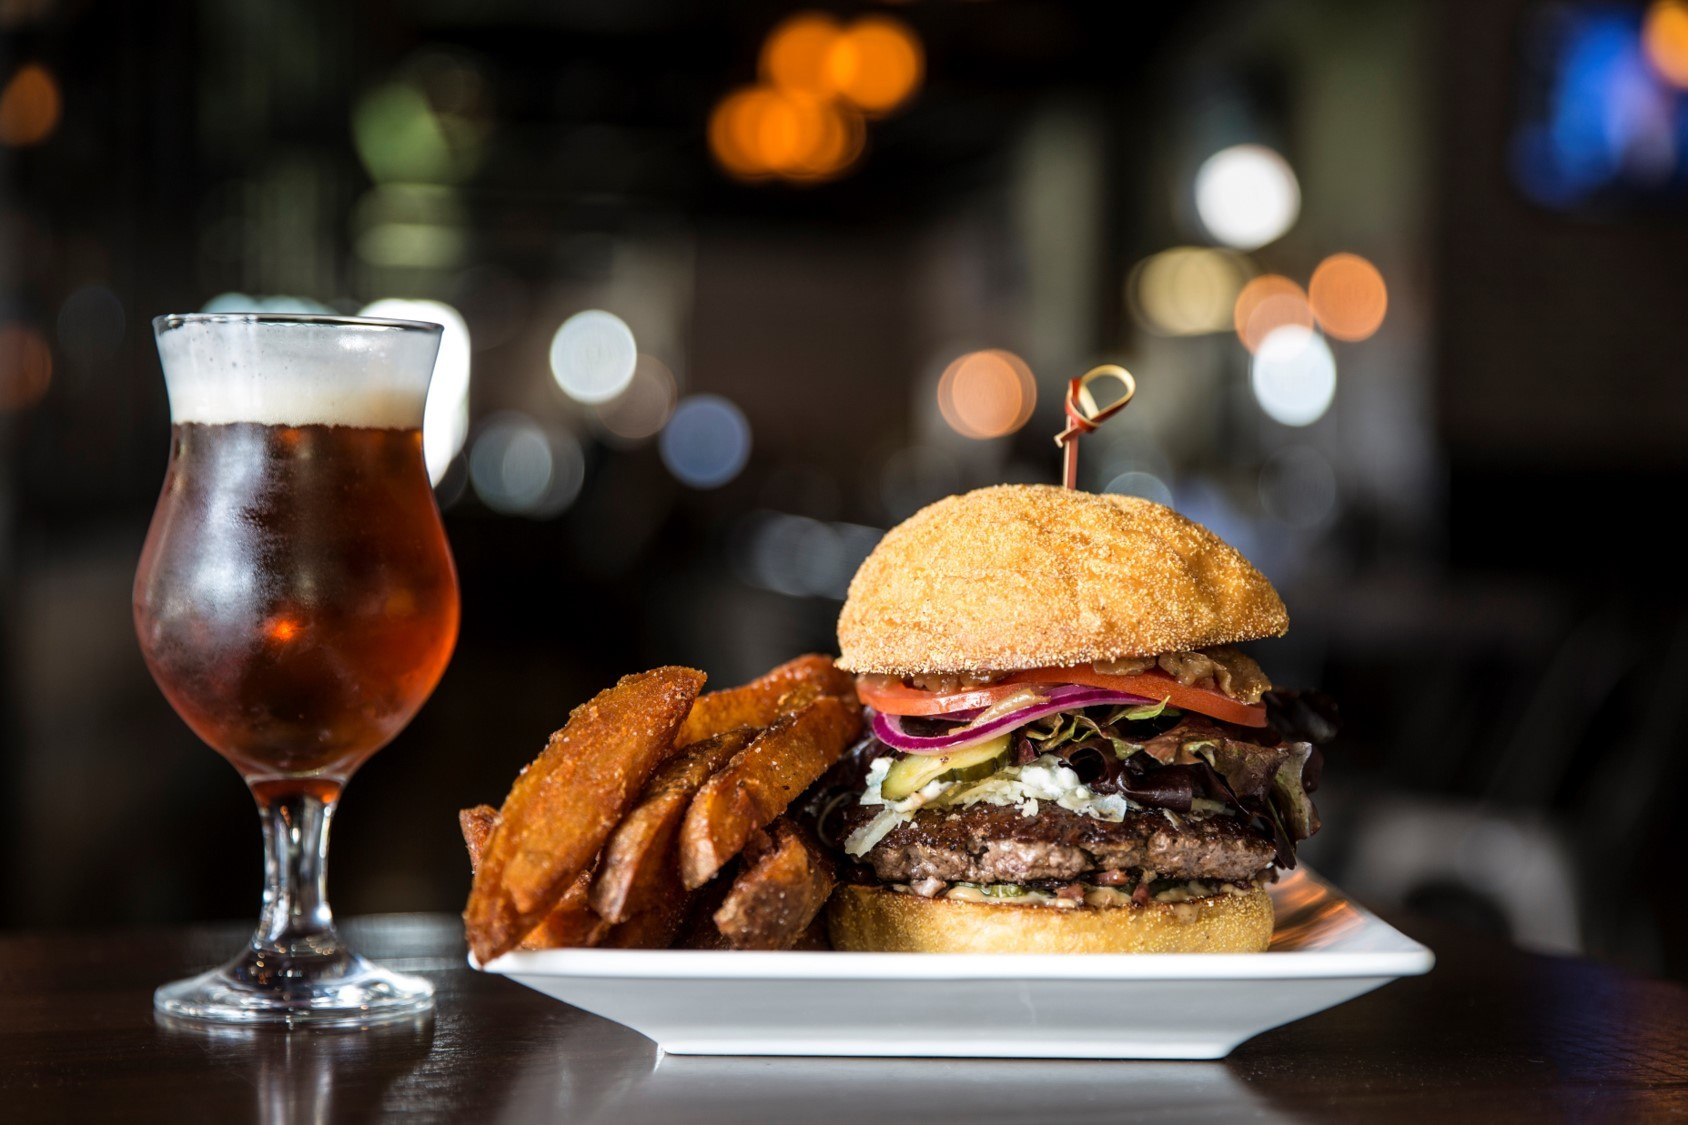 burger with fries and beer